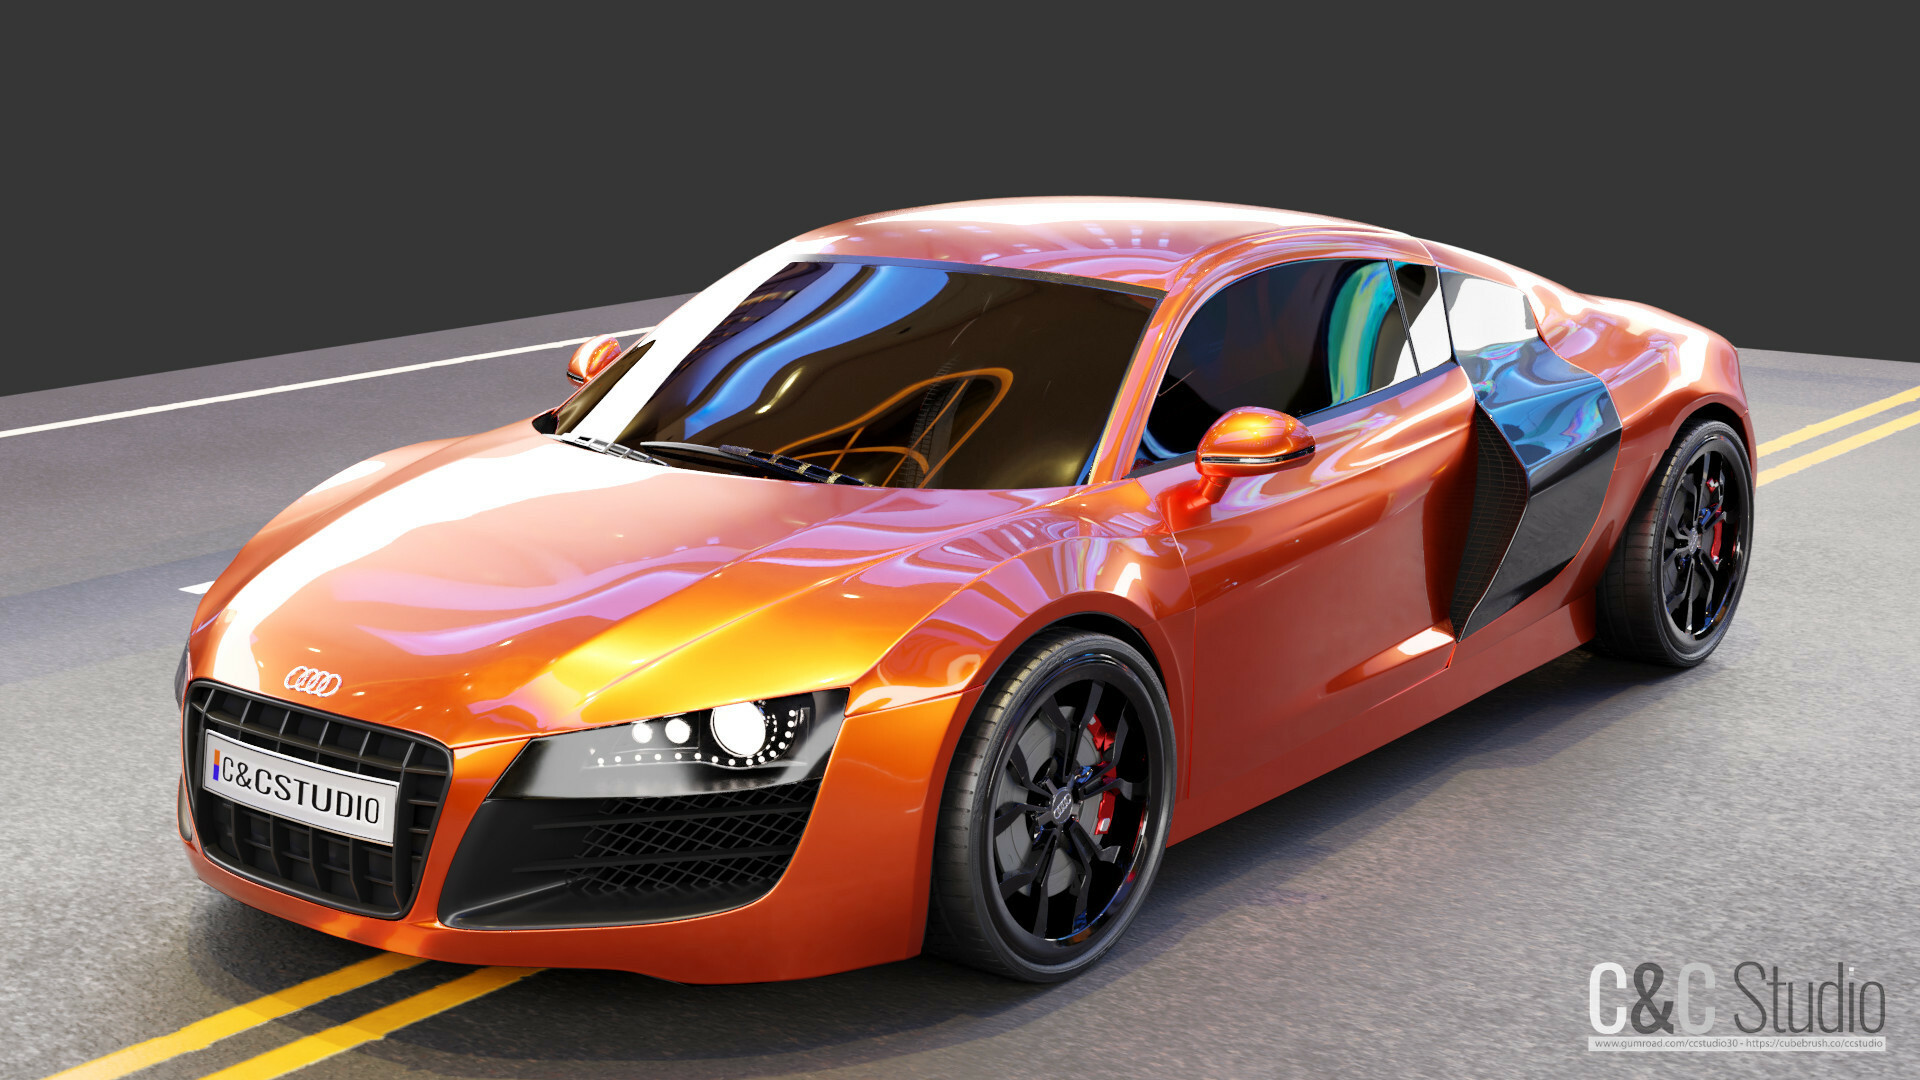 Audi R8 Model Free Download Cycles Eevee Blendernation